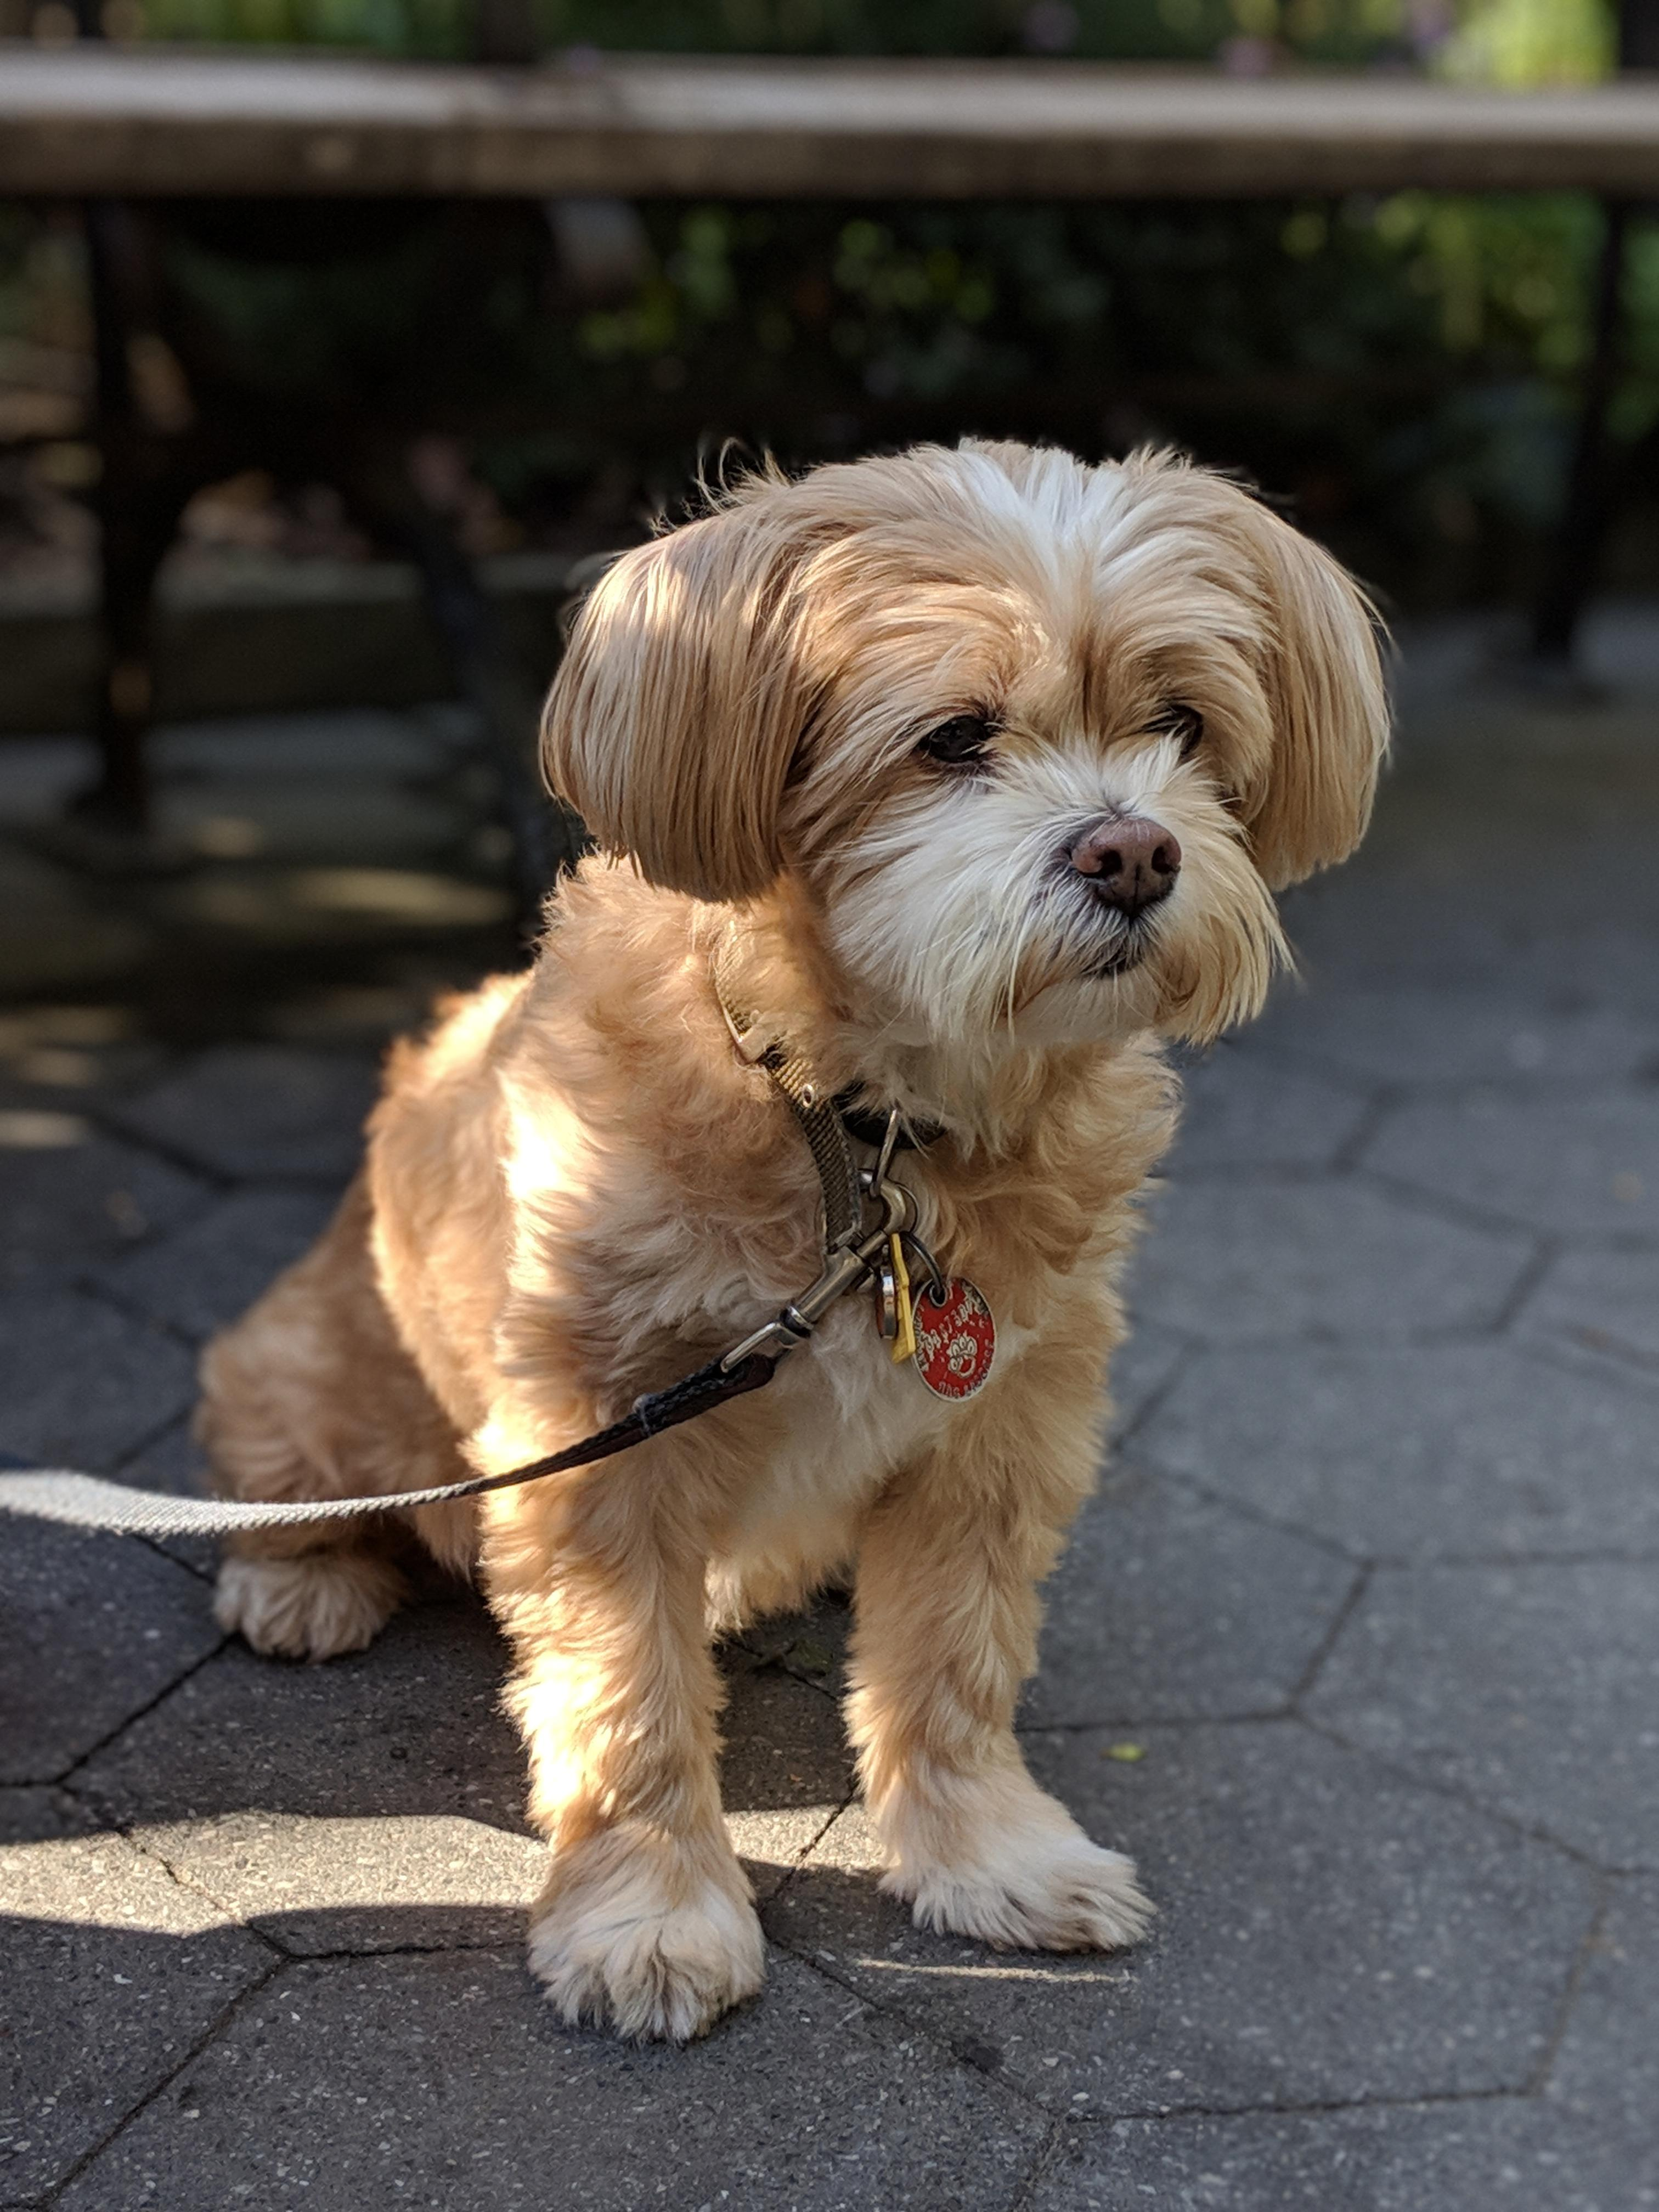 dog-with-portrait-mode